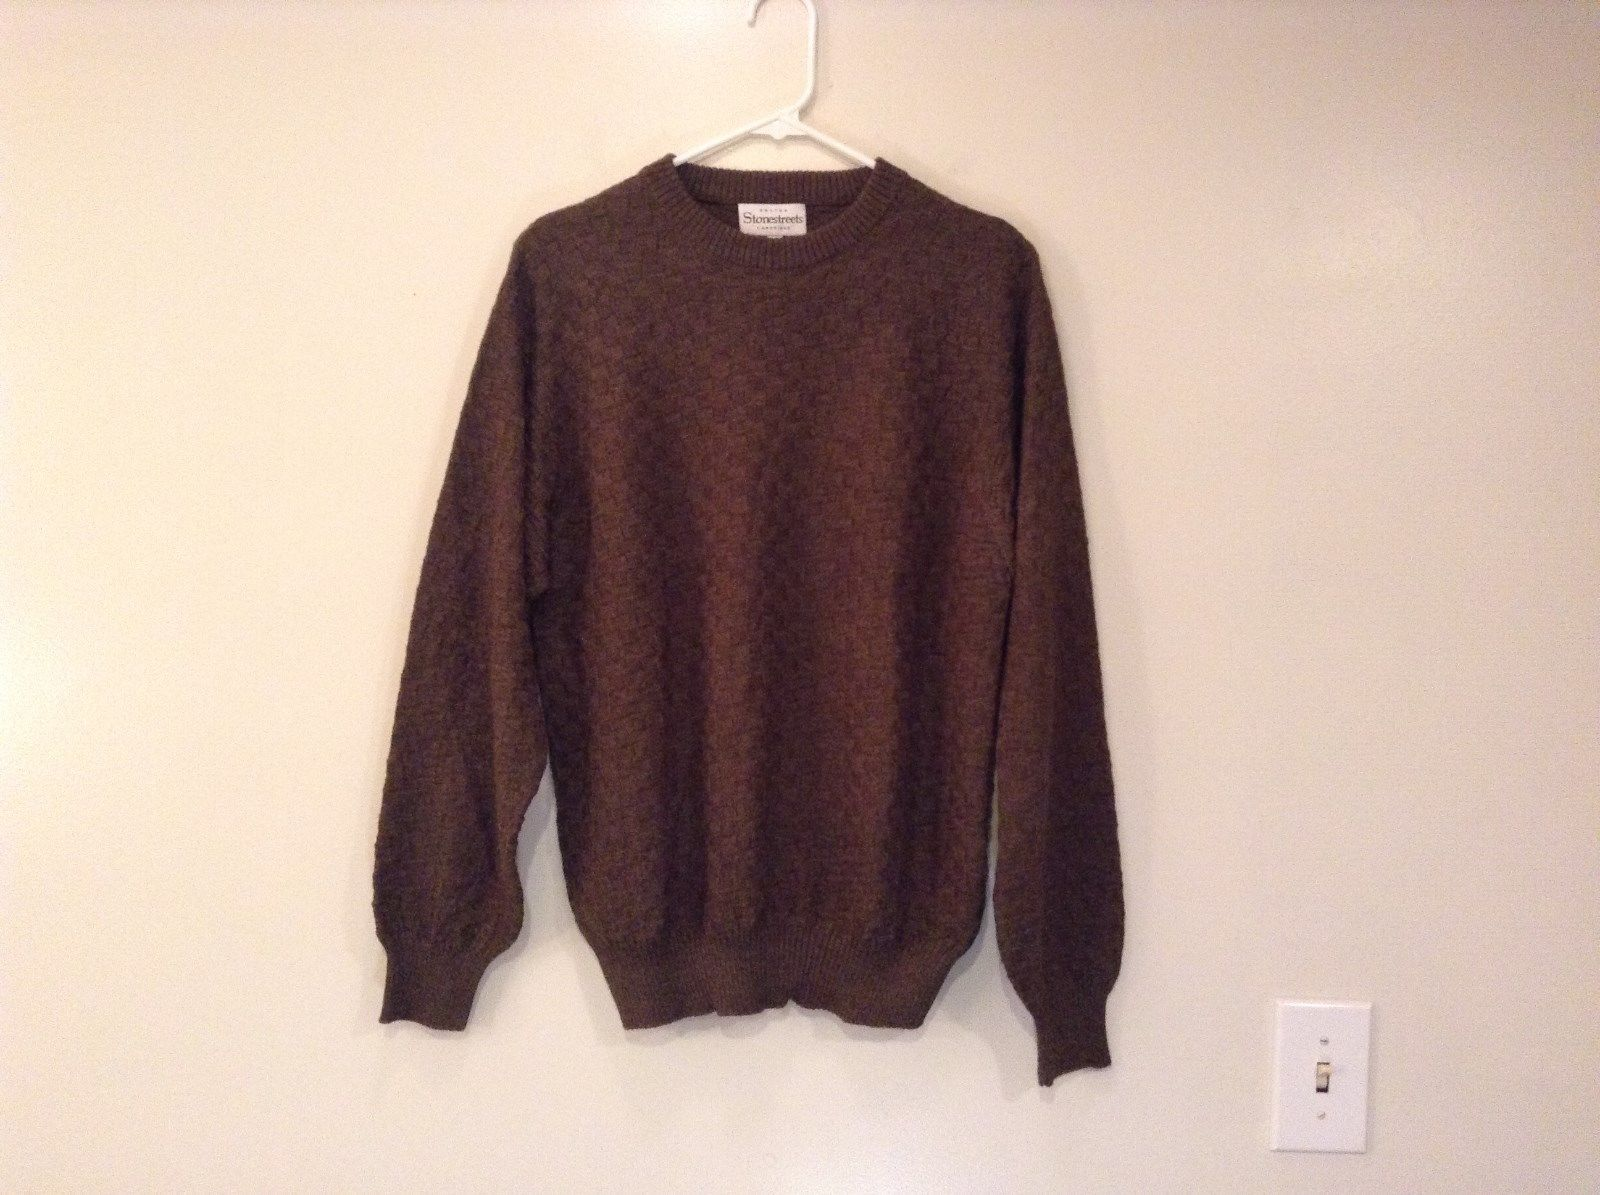 Olive Green Brown Long Sleeve Sweater Stonestreets Size Small Very Nice